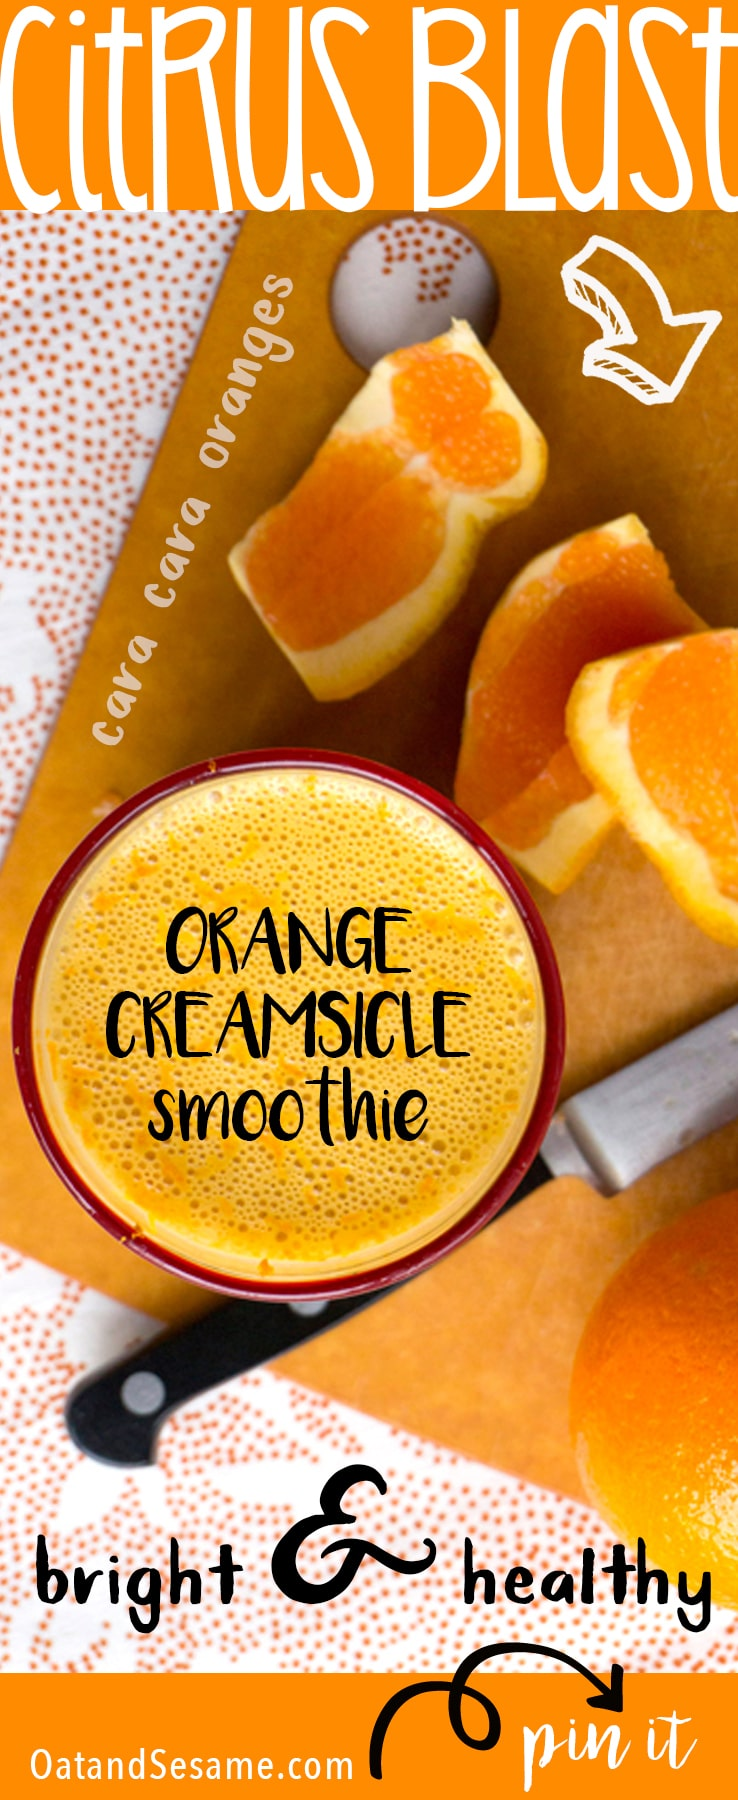 Orange Creamsicle Smoothie - Cara Cara Oranges burst into the smoothie scene in January thanks to the lovely farmers in California! Cheers to sunny skies and lots of Vitamin C! | #SMOOTHIES | #ORANGE | #BREAKFASTRECIPES | #Recipes at OatandSesame.com